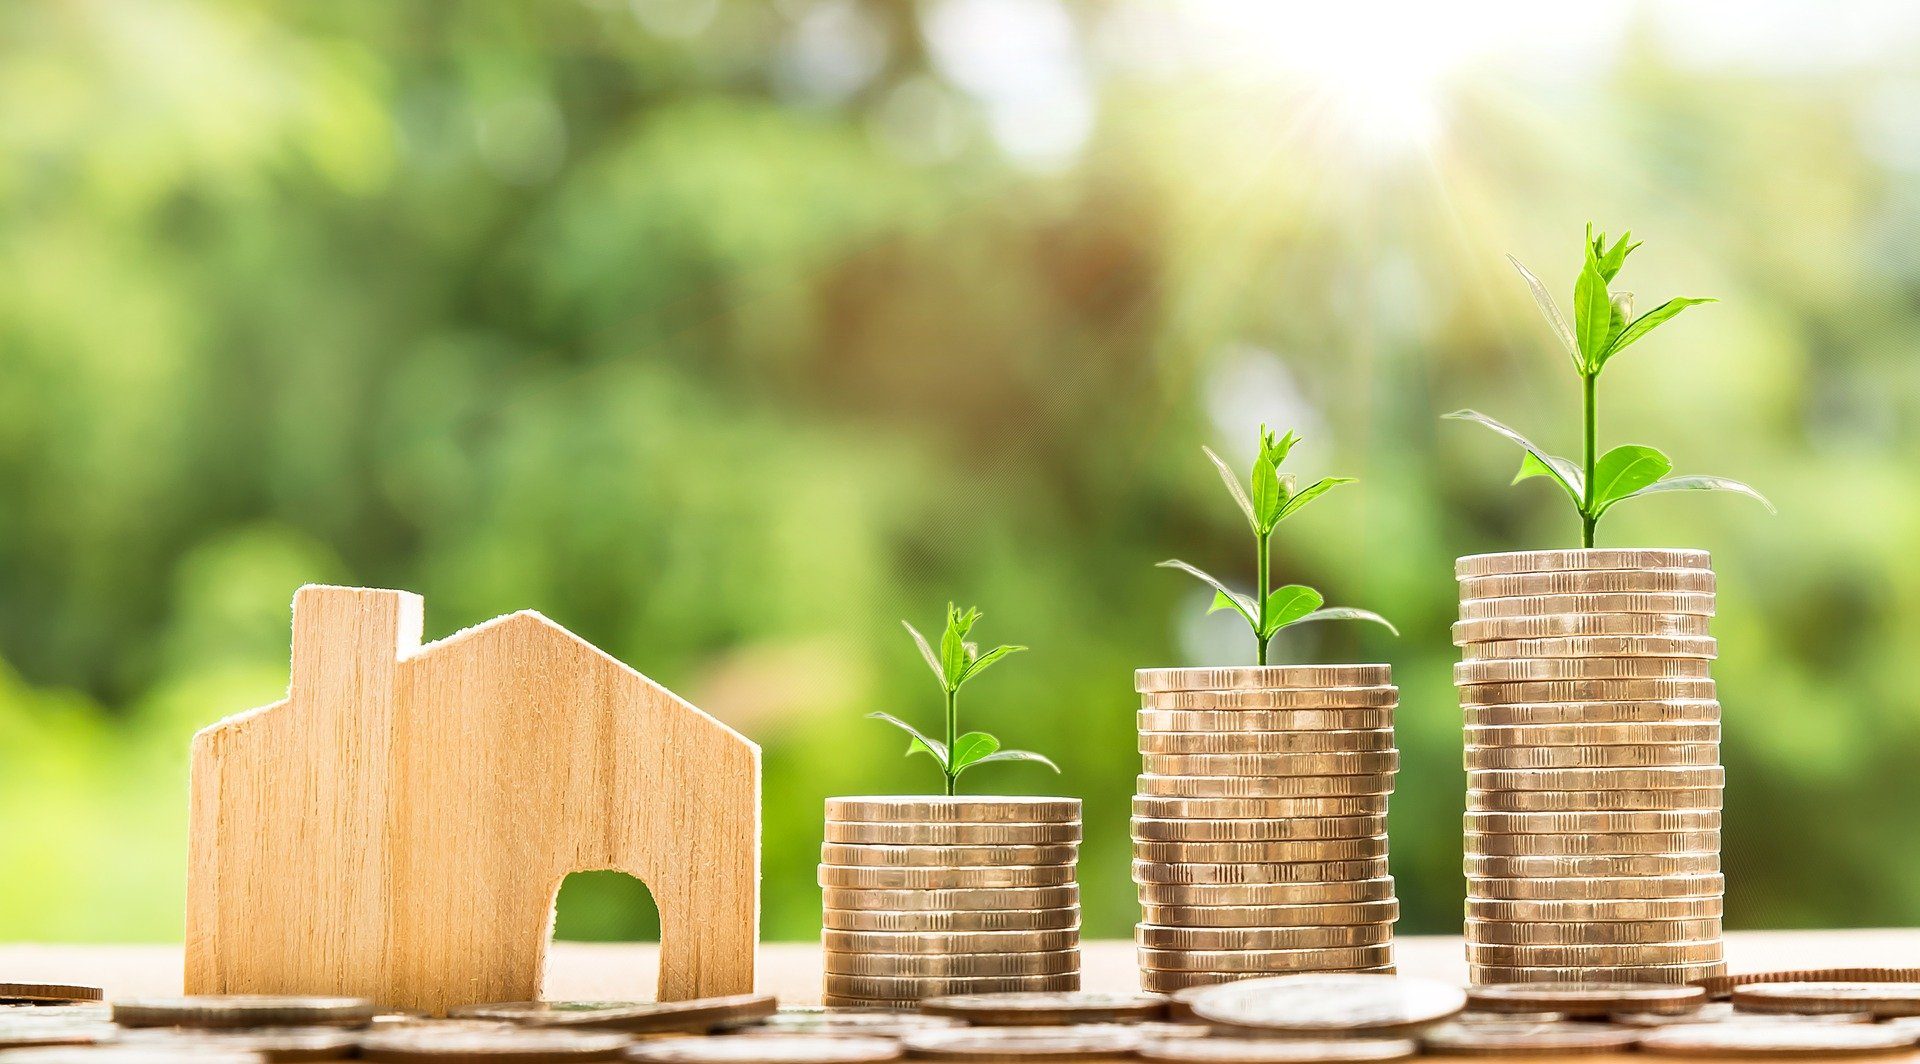 5 Ways to Financial Security While Building Thriving Communities Outside The System